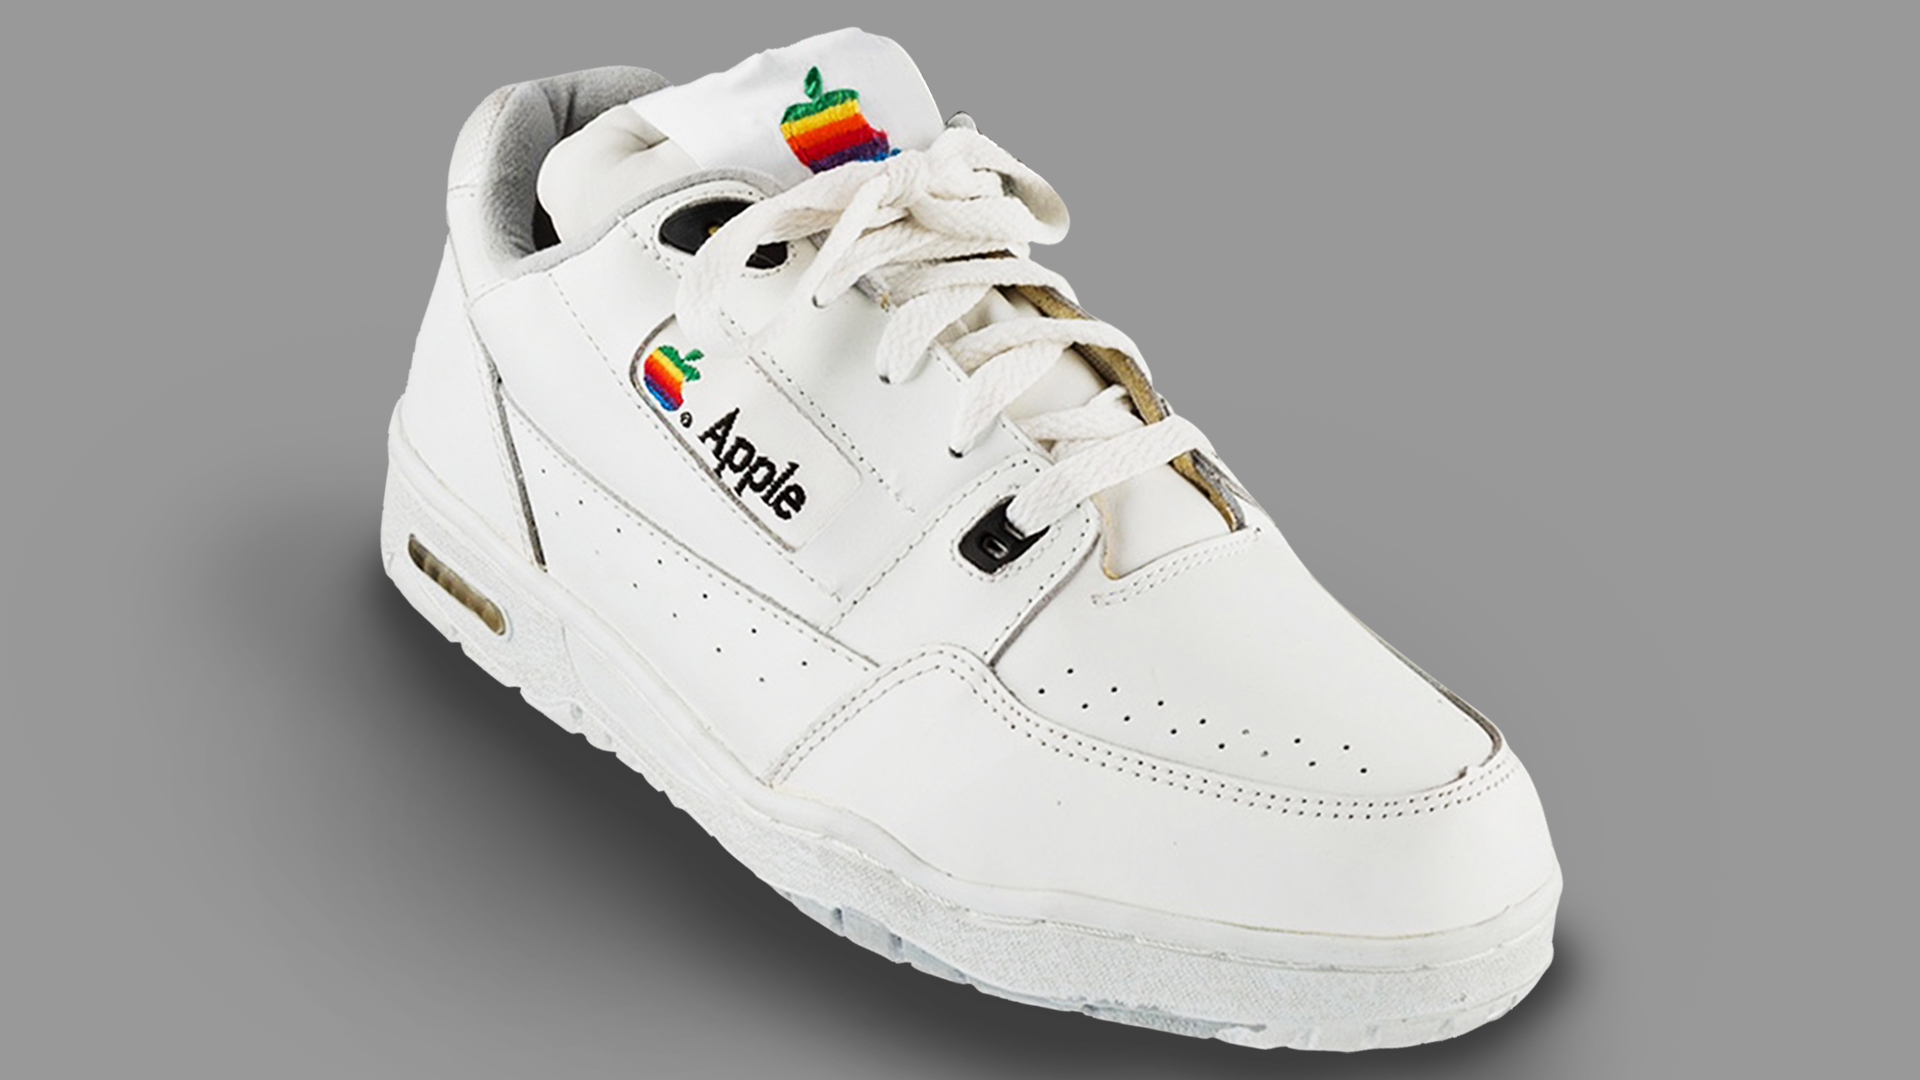 Apple Sneakers From The '90s Are Auctioning For $15,000